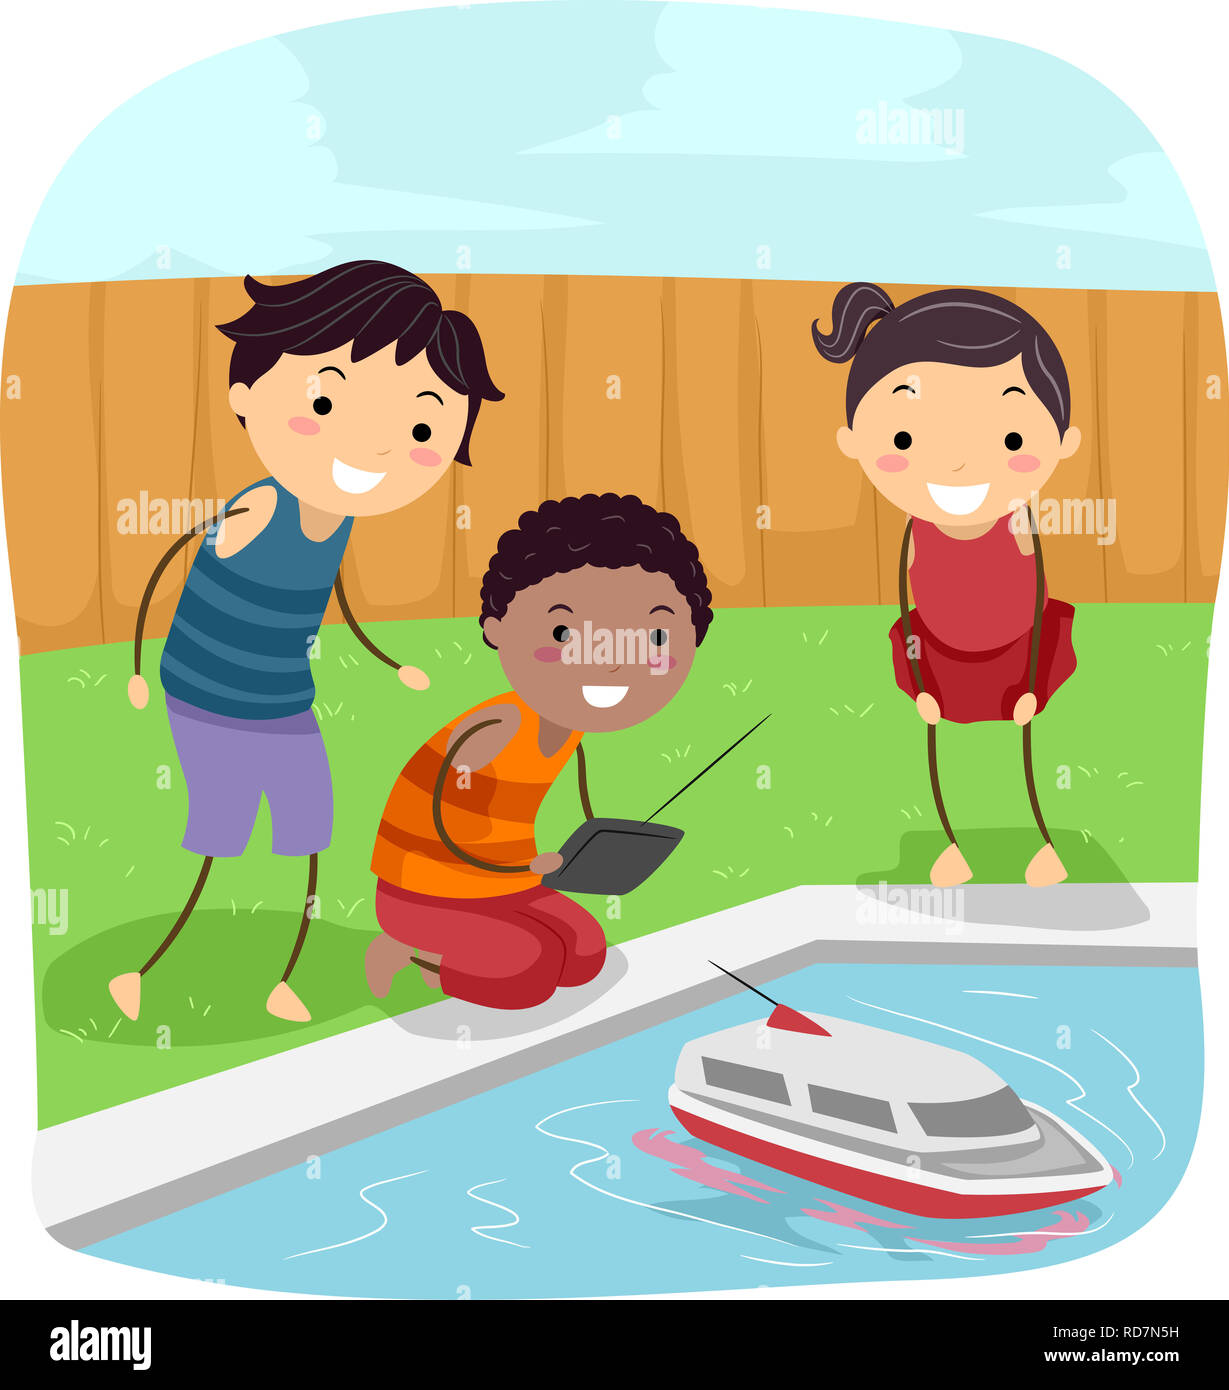 Illustration of Stickman Kids Sailing a Toy Ship Using ...